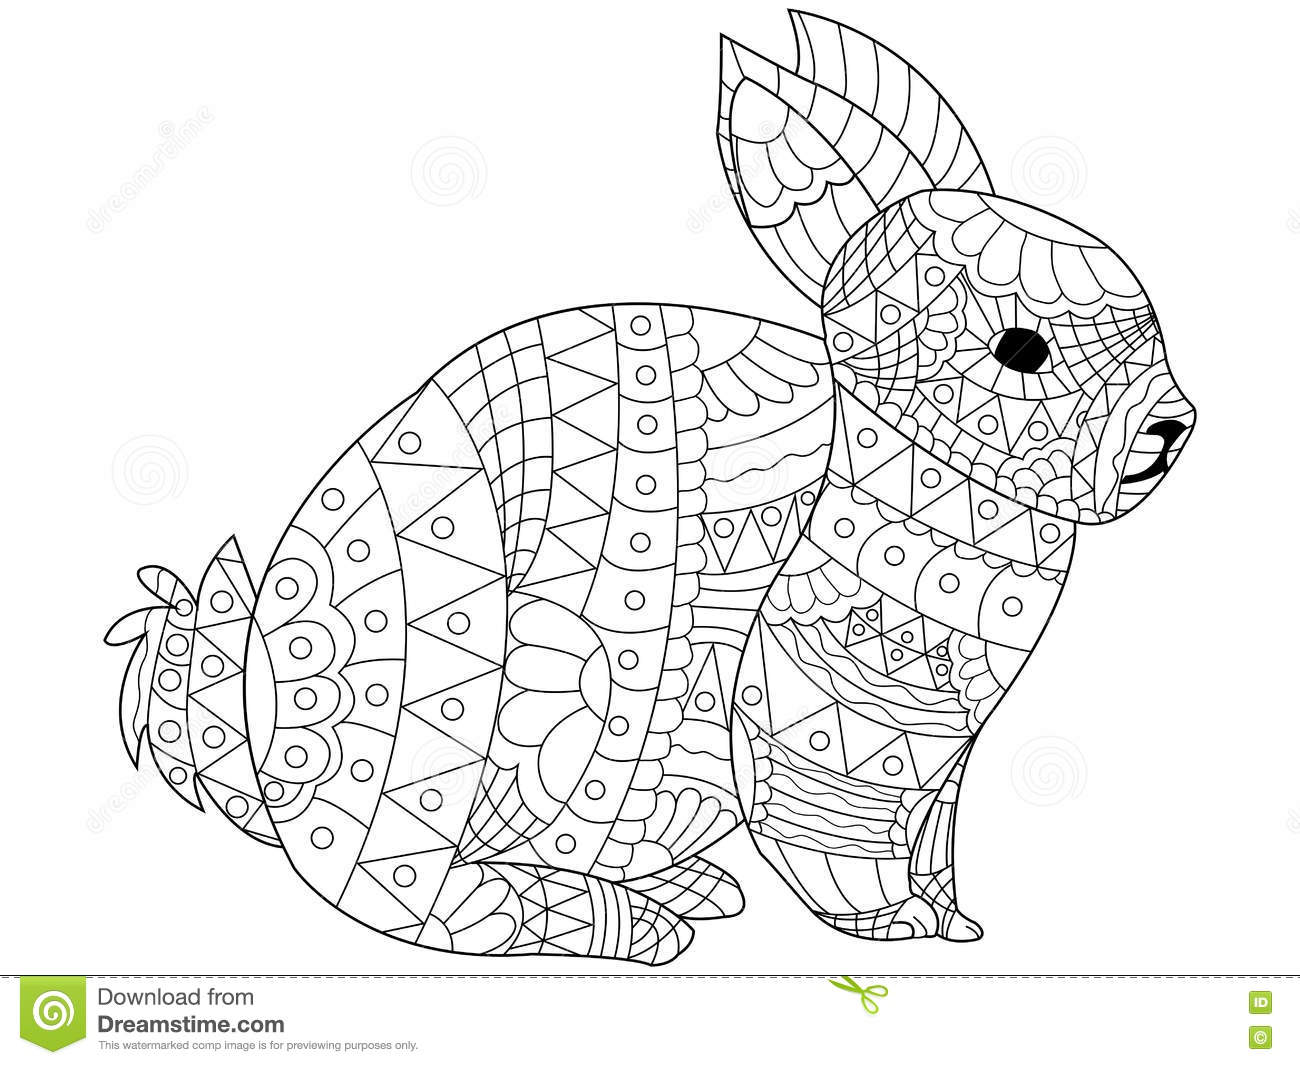 Rabbit Coloring Vector For Adults Stock Vector